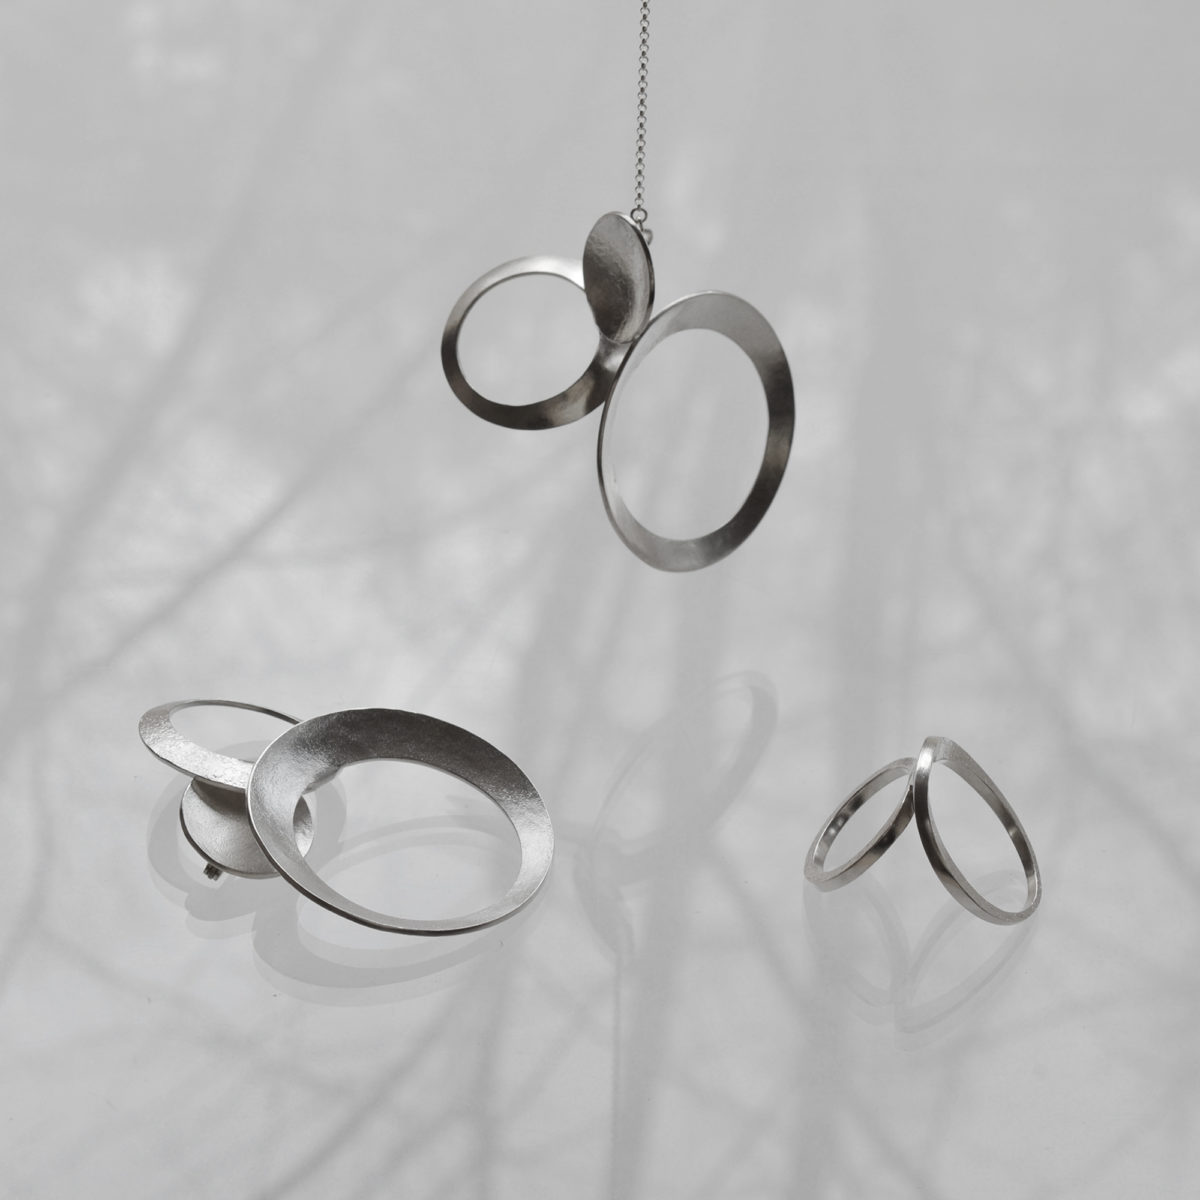 2020_time-goes-on_jewelry